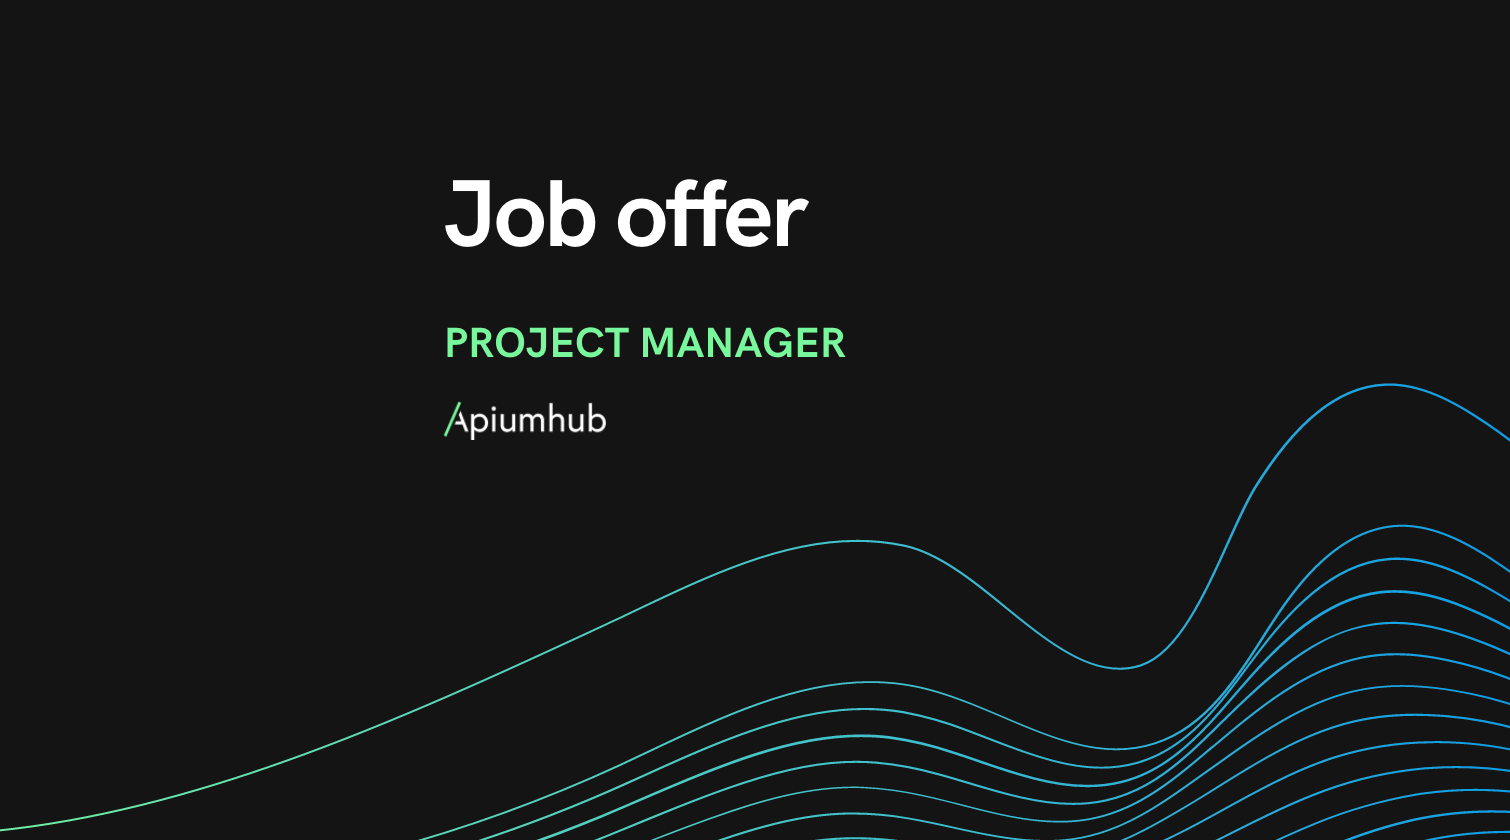 Project manager jo offer apiumhub